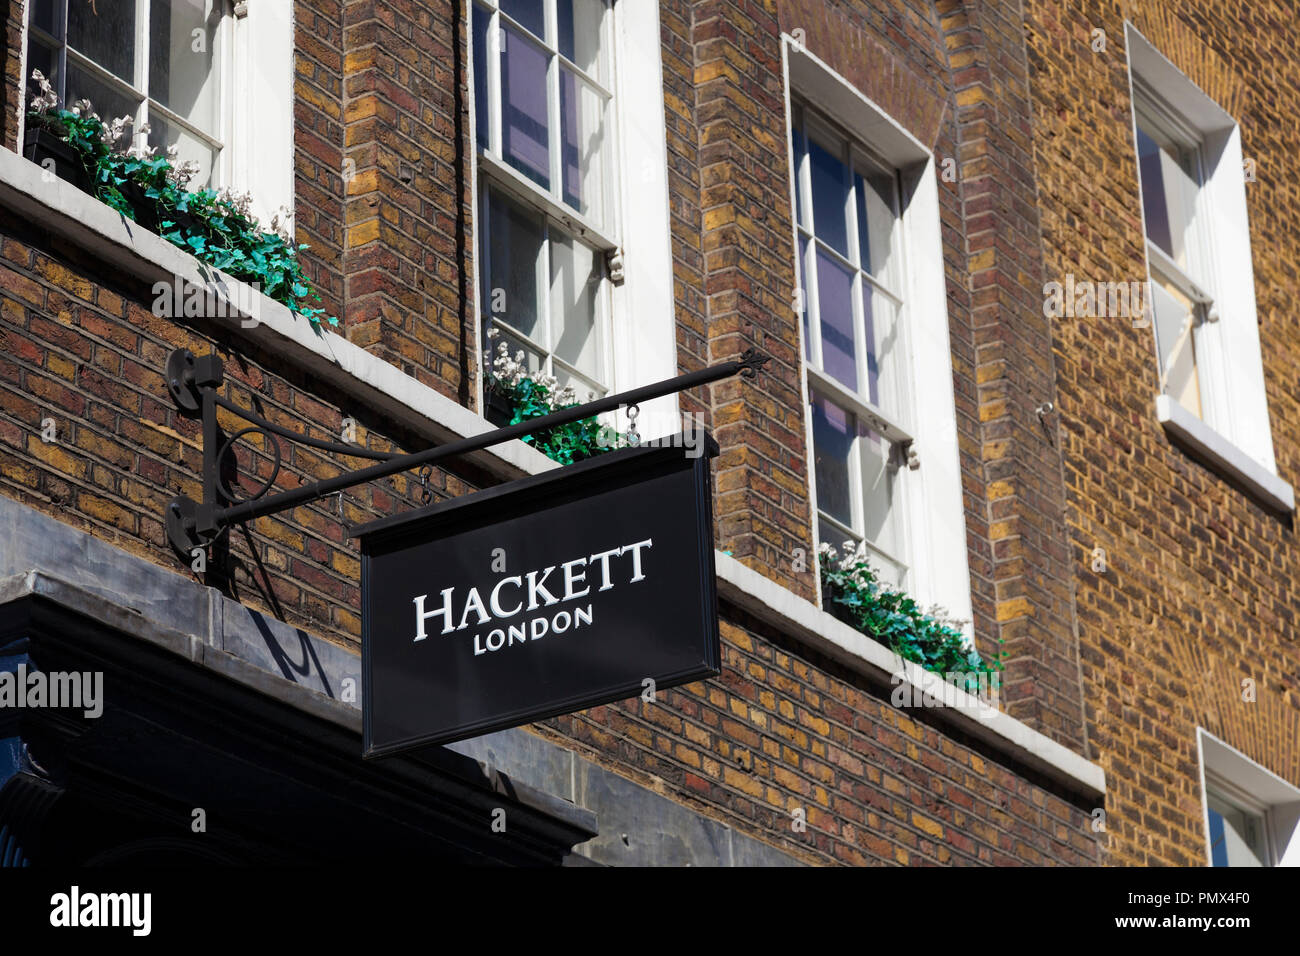 Sign, Hackett London, on store at King Street, Covent Garden, London, UK. - Stock Image